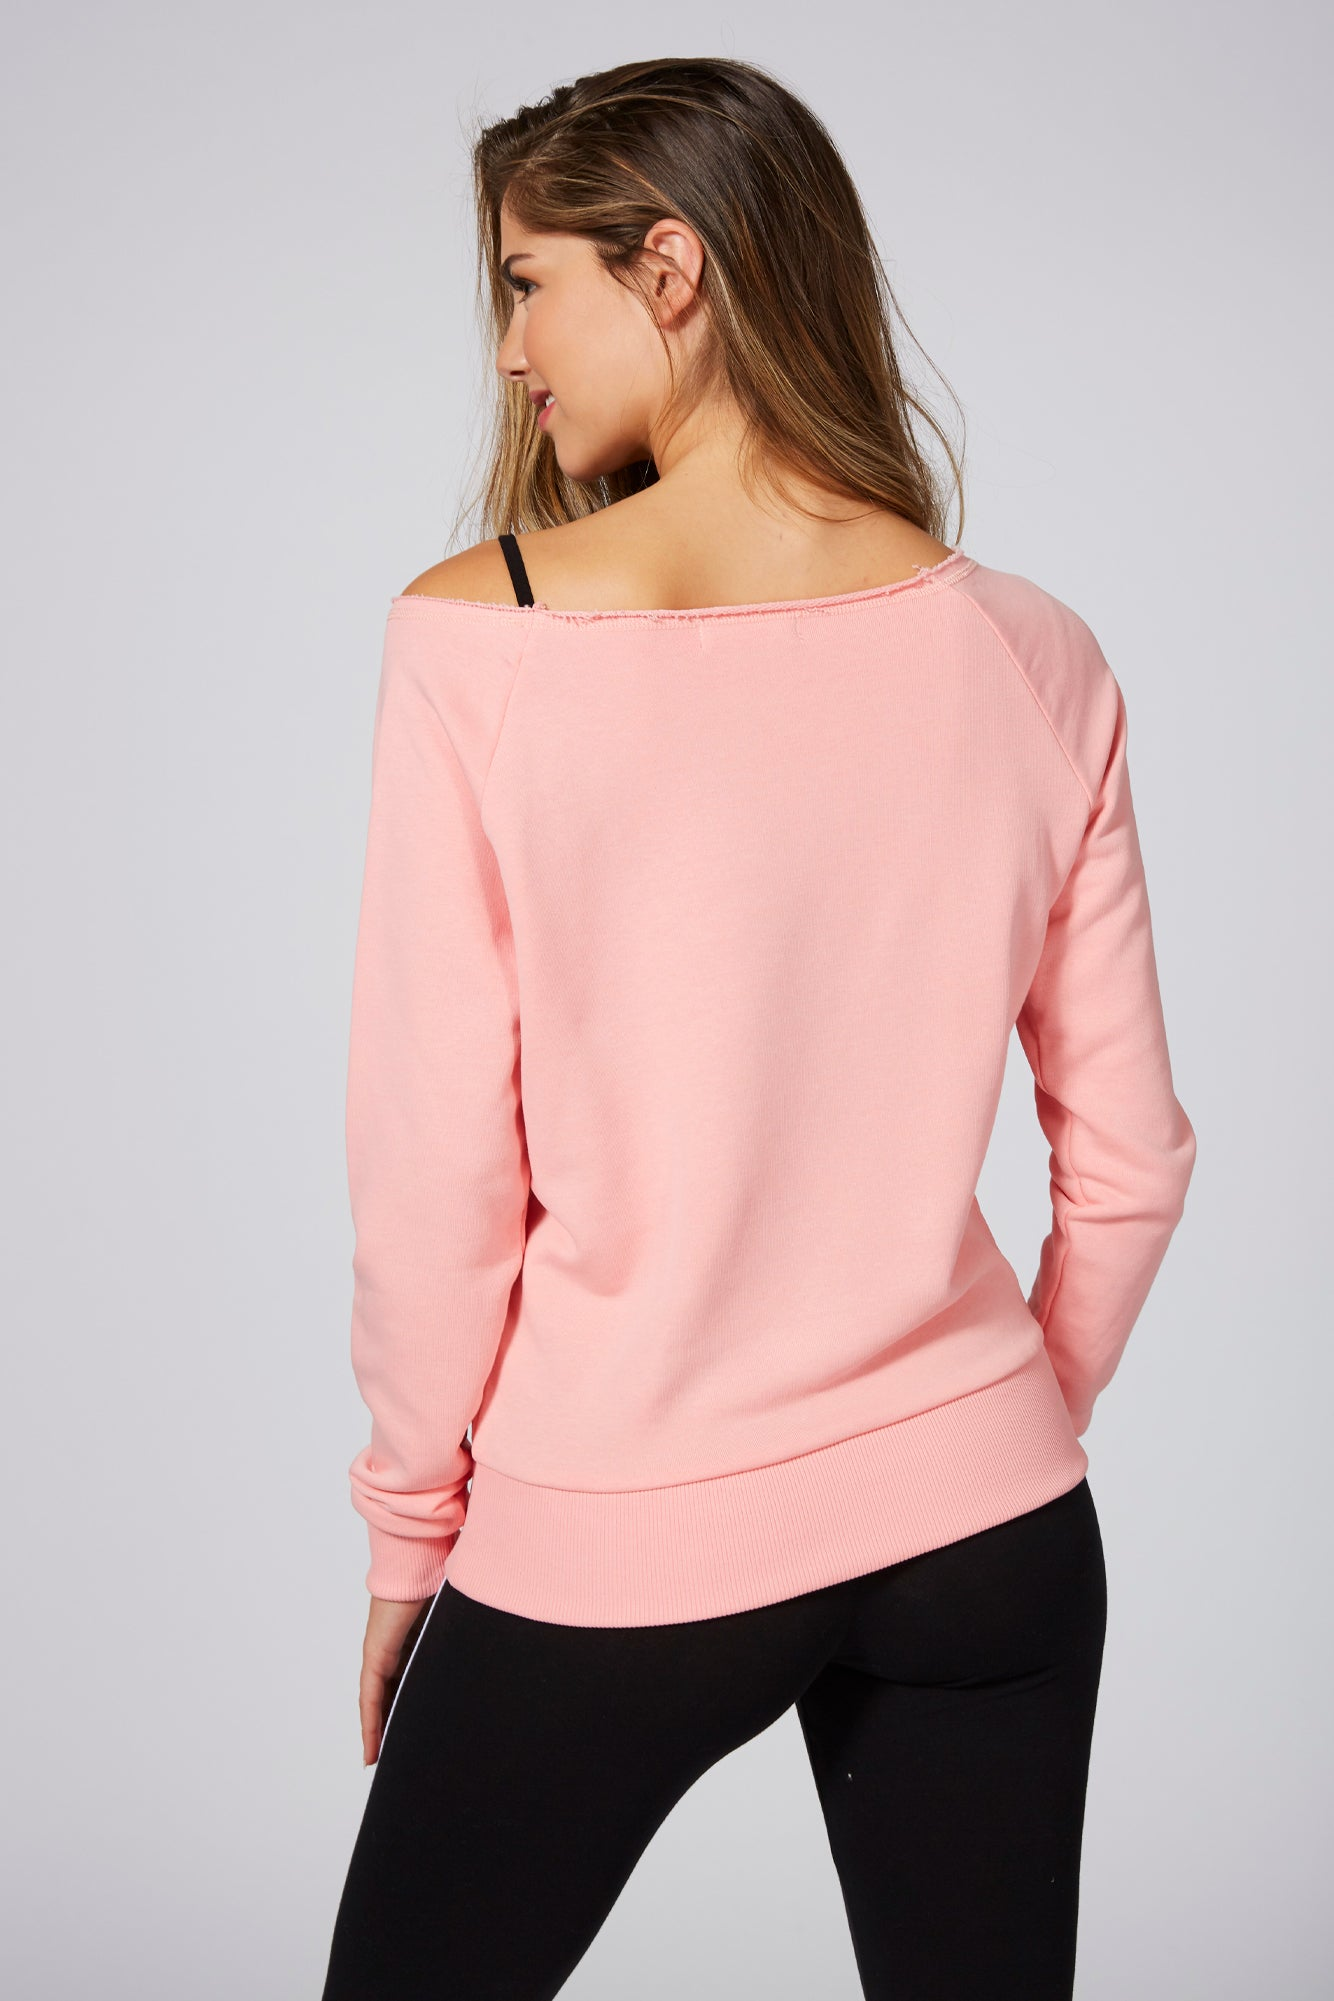 Pineapple Dancewear Women's Coral Loopback Crop Off Shoulder Sweatshirt TL15570P3